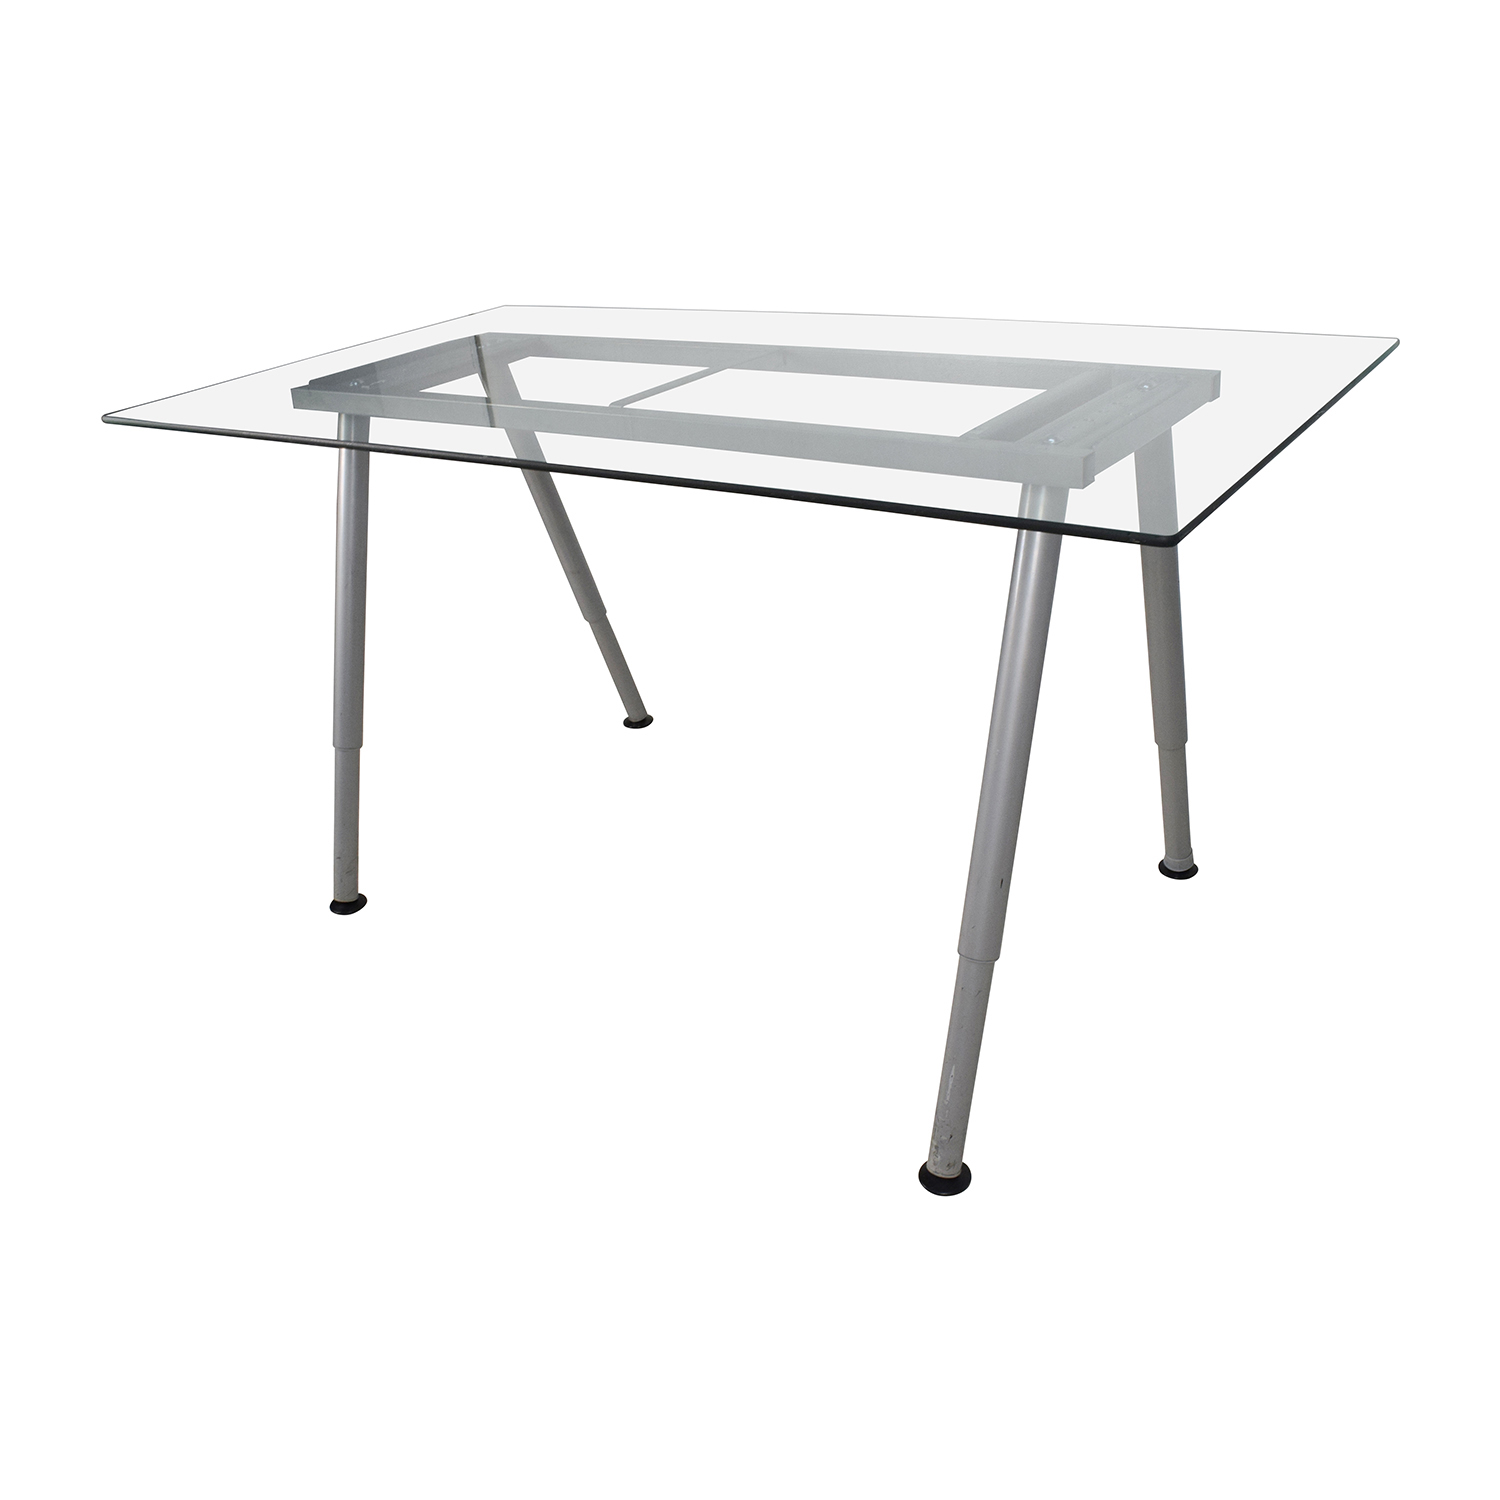 Wonderful Used Trestle Tables #25 - ... Glass Top Trestle Table With Metal Base ...